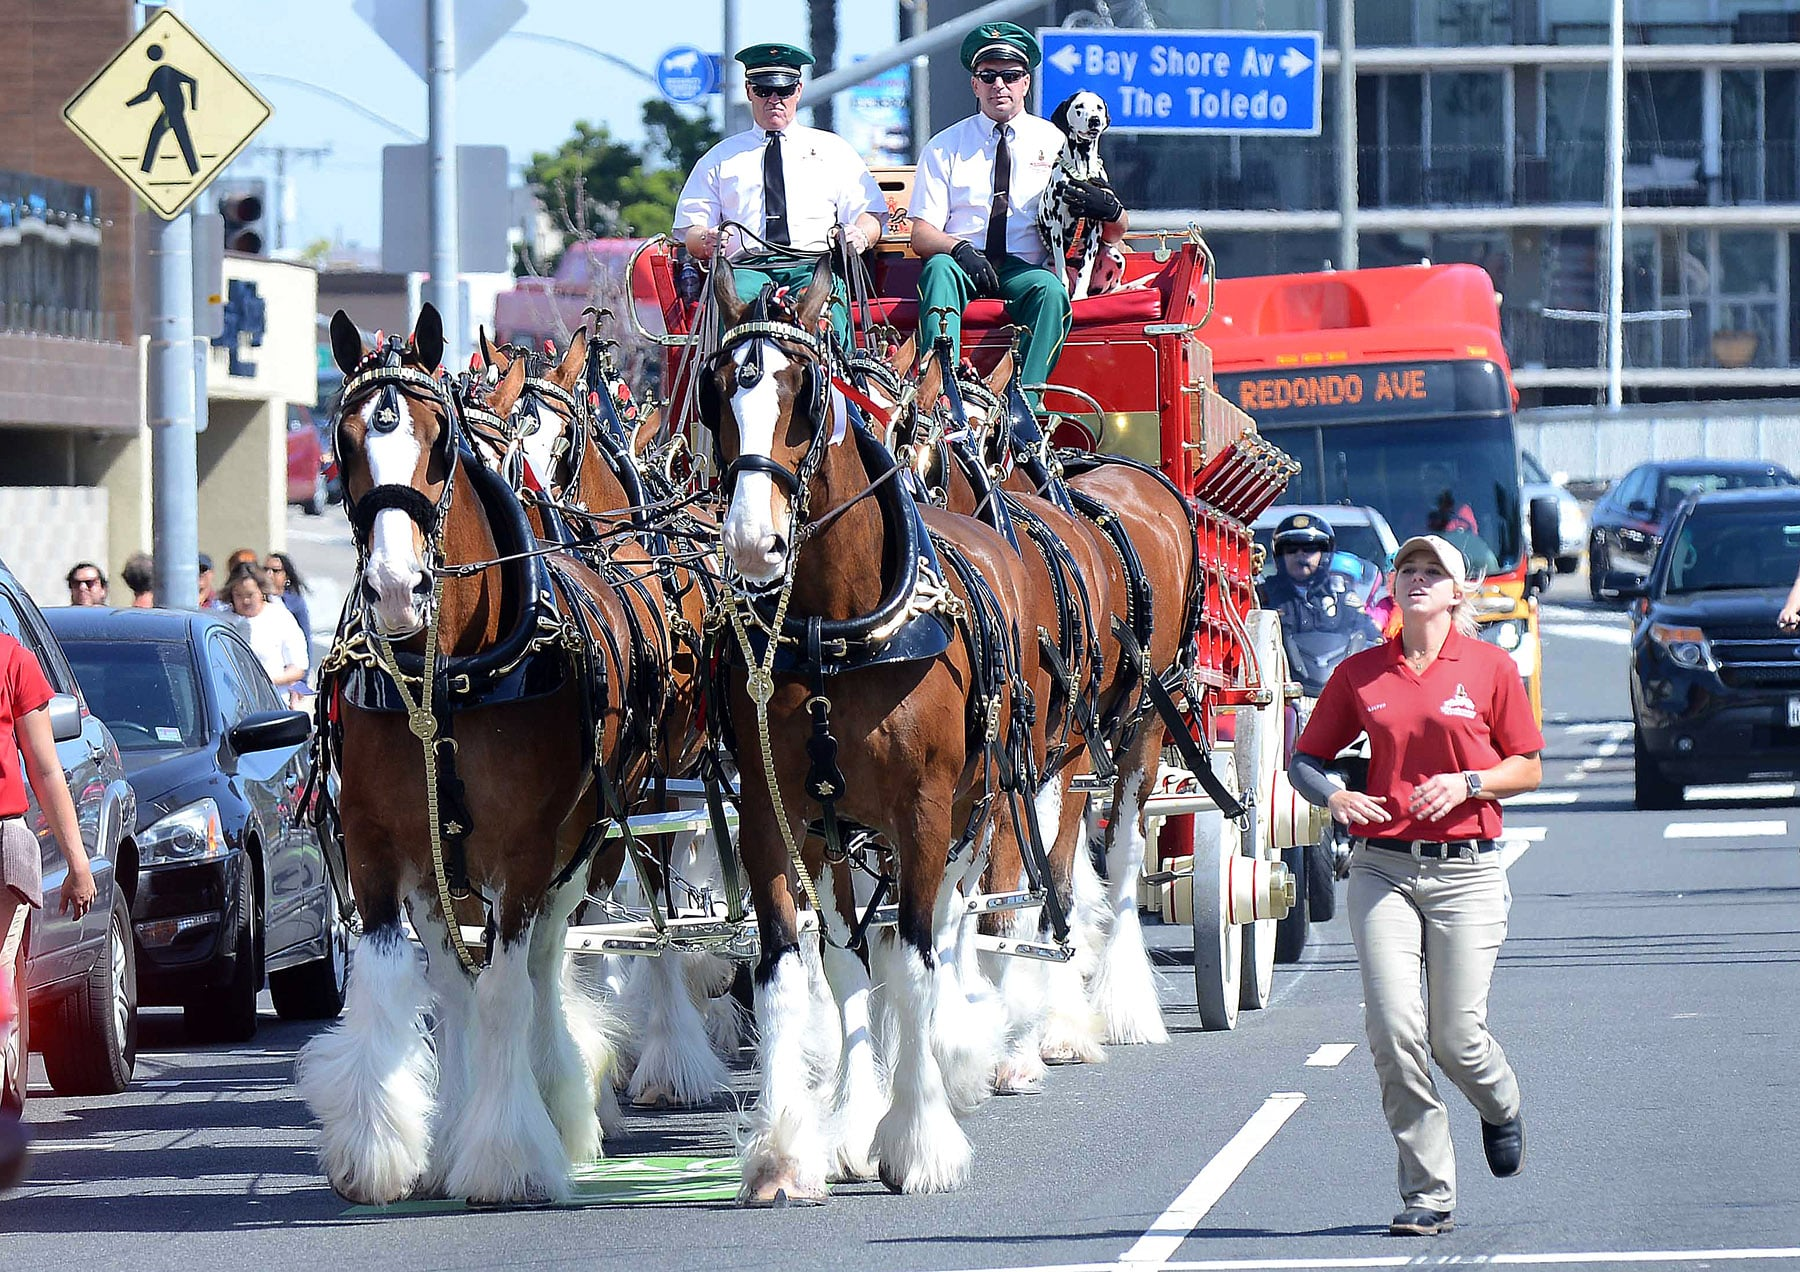 Budweiser Clydesdales Make Their Way Down 2nd Street In Belmont Shore ? Long Beach Post photo